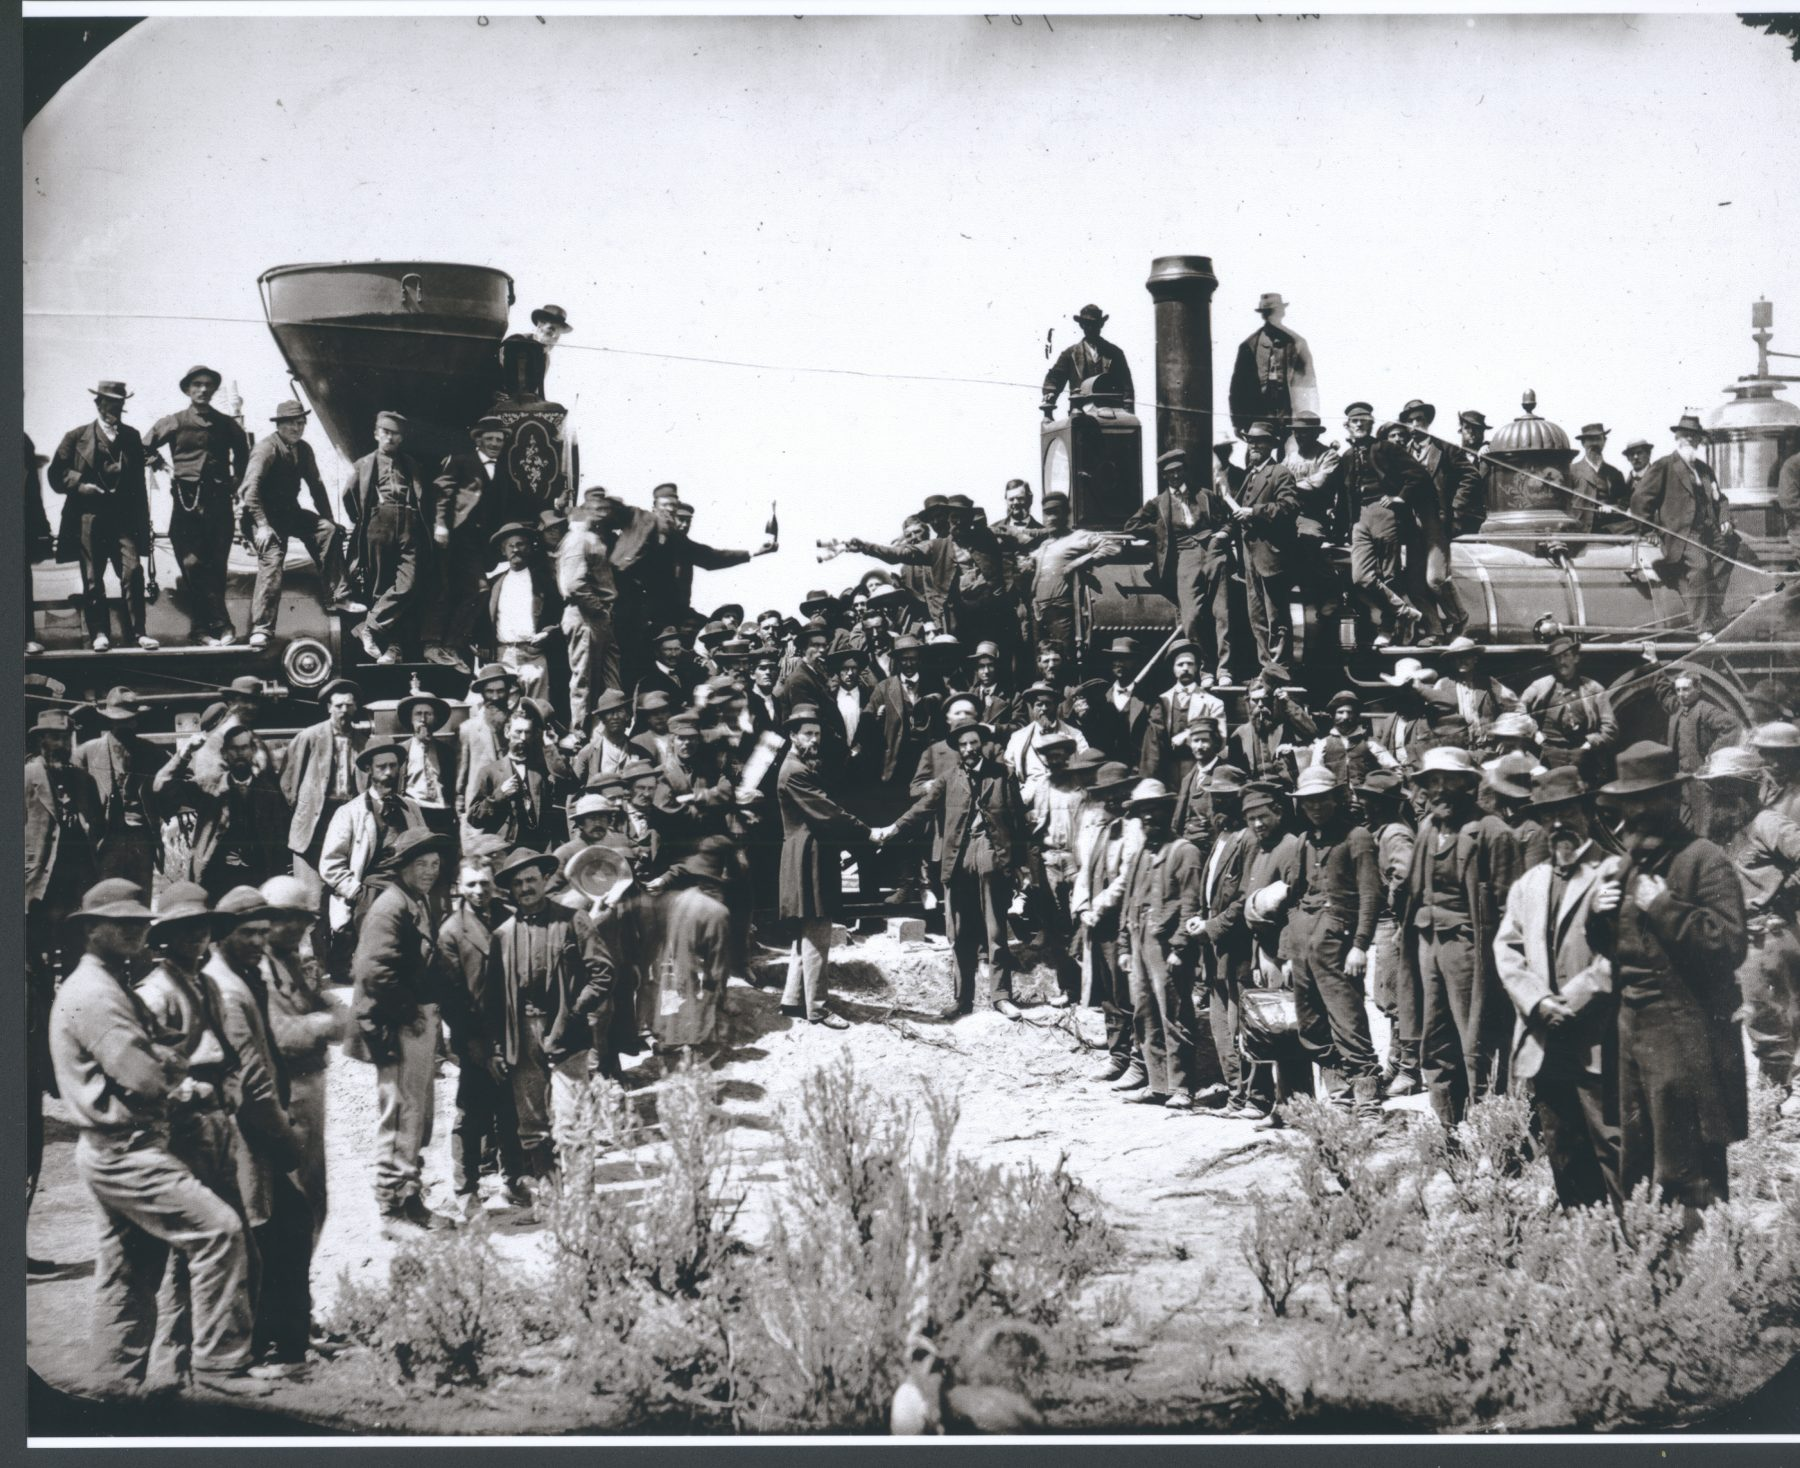 "10 May 2019 Posted. ""East and West Shaking hands at laying Last Rail"" by Andrew J. Russell on May 10, 1869 at Promontory Summit, Utah, displayed at the Museum of Chinese in America (MOCA) core exhibition, Courtesy of the Union Pacific Railroad Museum. 摄影师Andrew J. Russell拍摄的""东西两段铁路的胜利会师"",1869年5月10日,犹他州海角峰,美国华人博物馆(MOCA)核心展览展出图片,联合太平洋铁路博物馆馆藏"